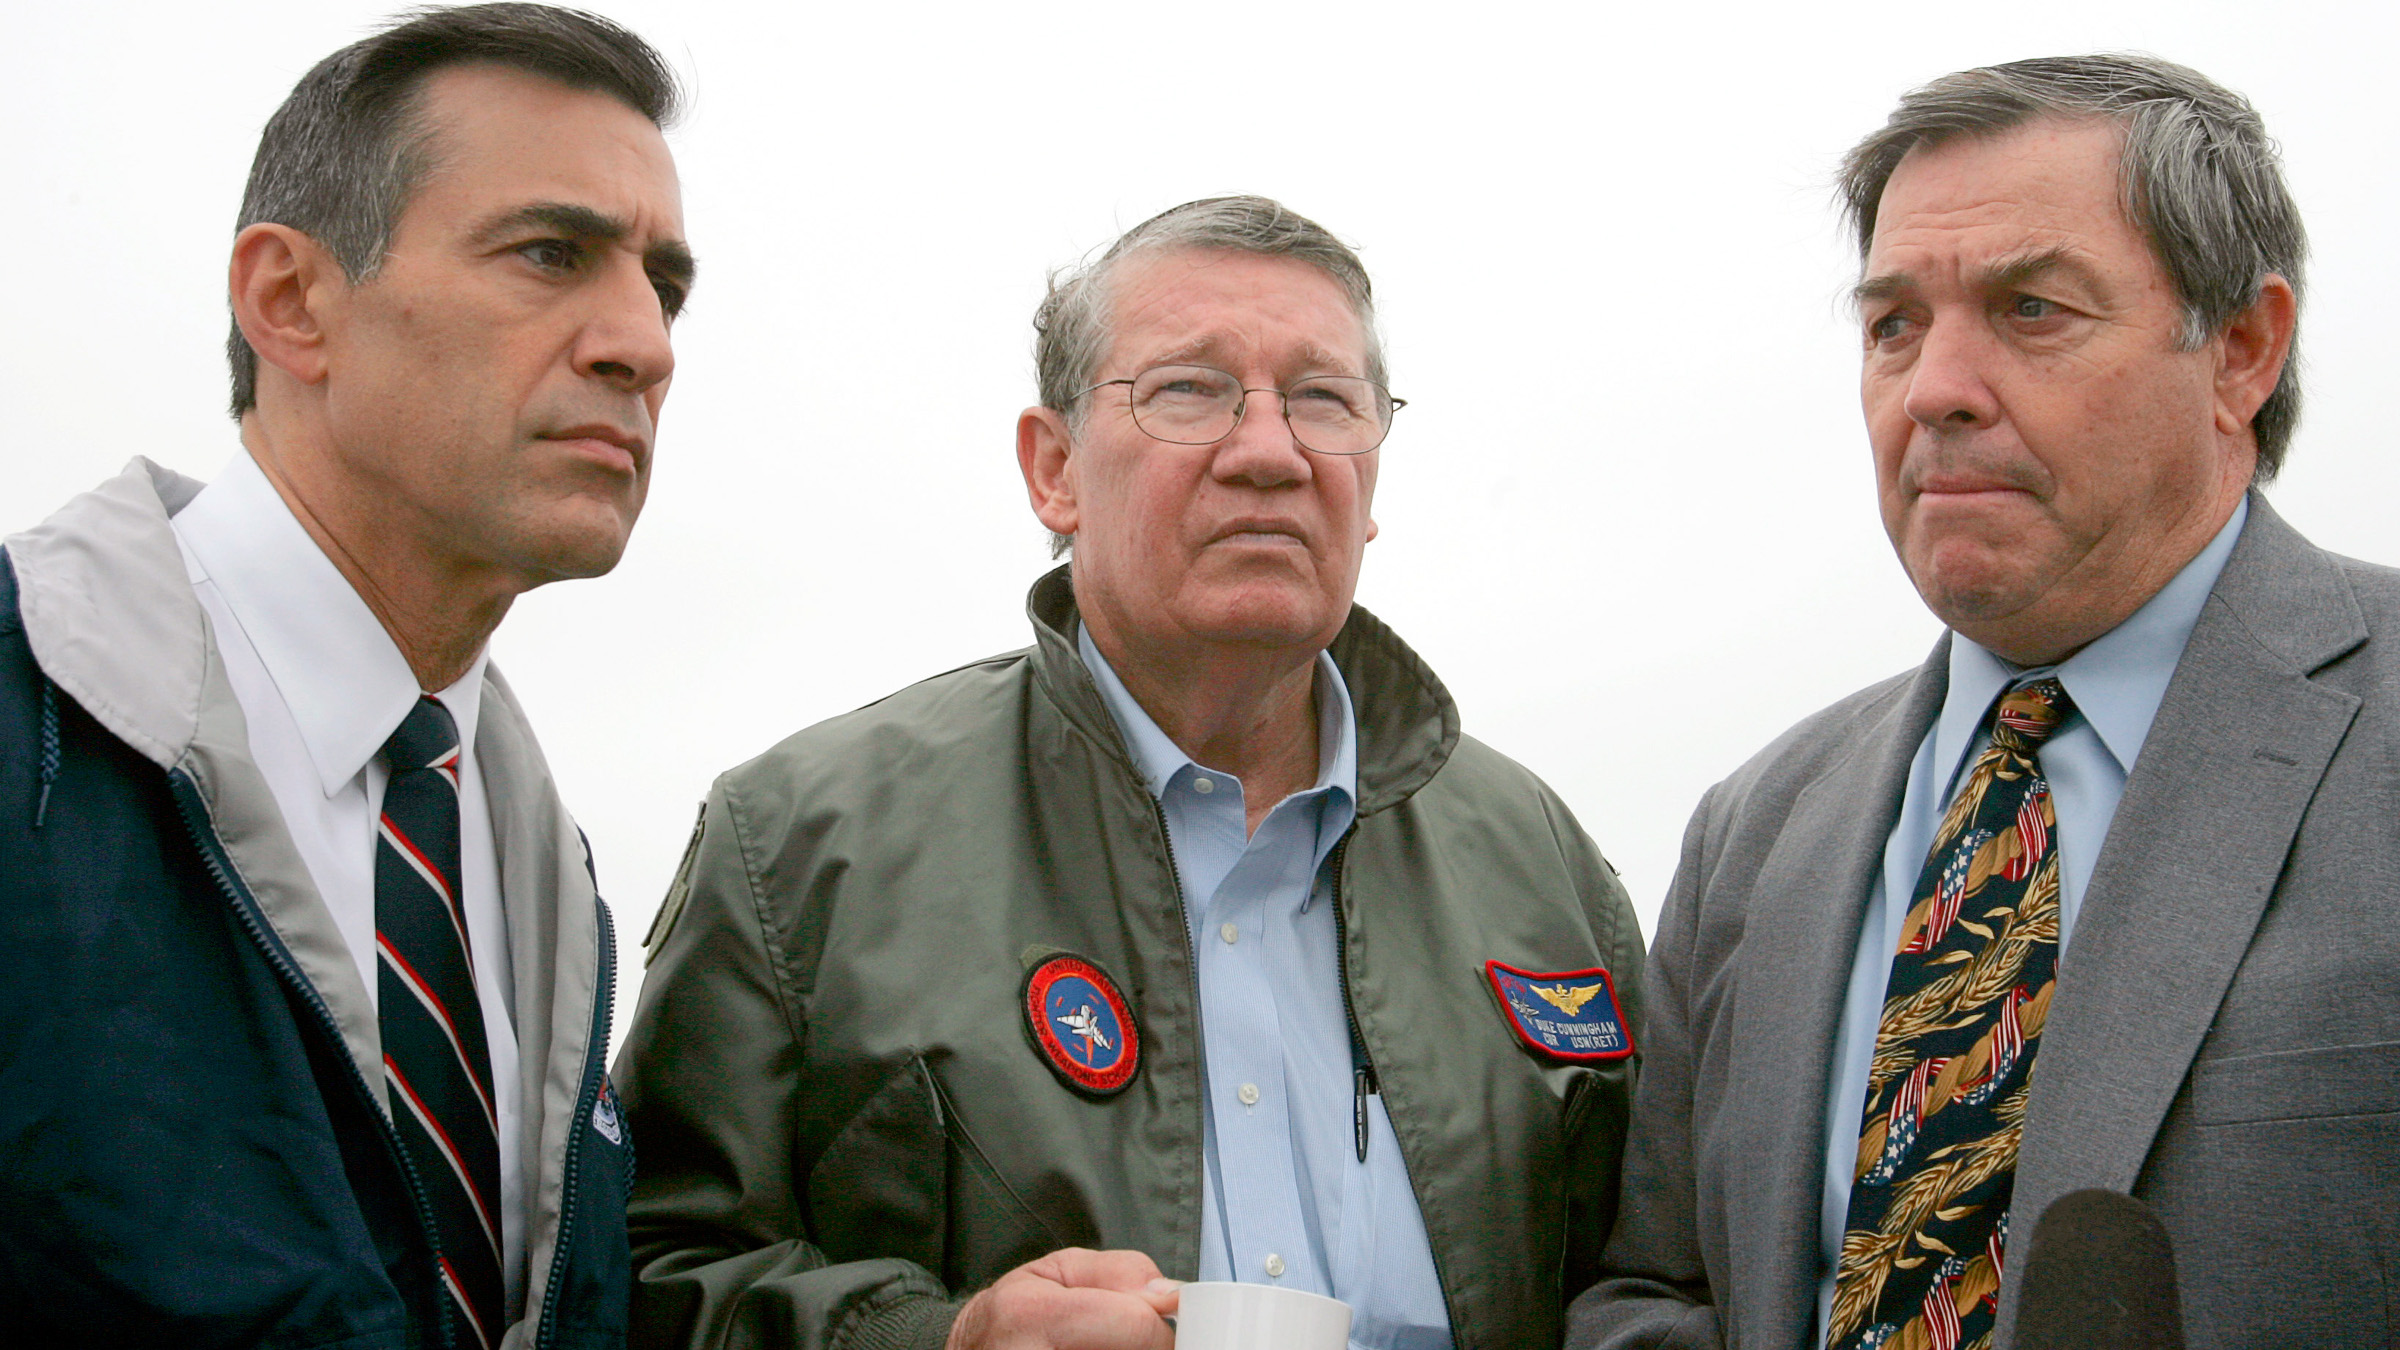 "Congressman Randy ""Duke"" Cunningham (R-San Diego) (C) is flanked by Congressman Darrell Issa (R-San Diego) (L) and Congressman Duncan Hunter (R-San Diego) as they take a ride on the U.S. Navy's fastest large ship, the Sea Fighter, in San Diego, California August 1, 2005. The aluminum-hulled, wave-piercing catamaran will operate at greater than 50 knots and has a range of approximately 4000 nautical miles. The ship is moving to San Diego to continue experimentation while assigned to Commander Naval Surface Force (CNSF) U.S. Third Fleet."